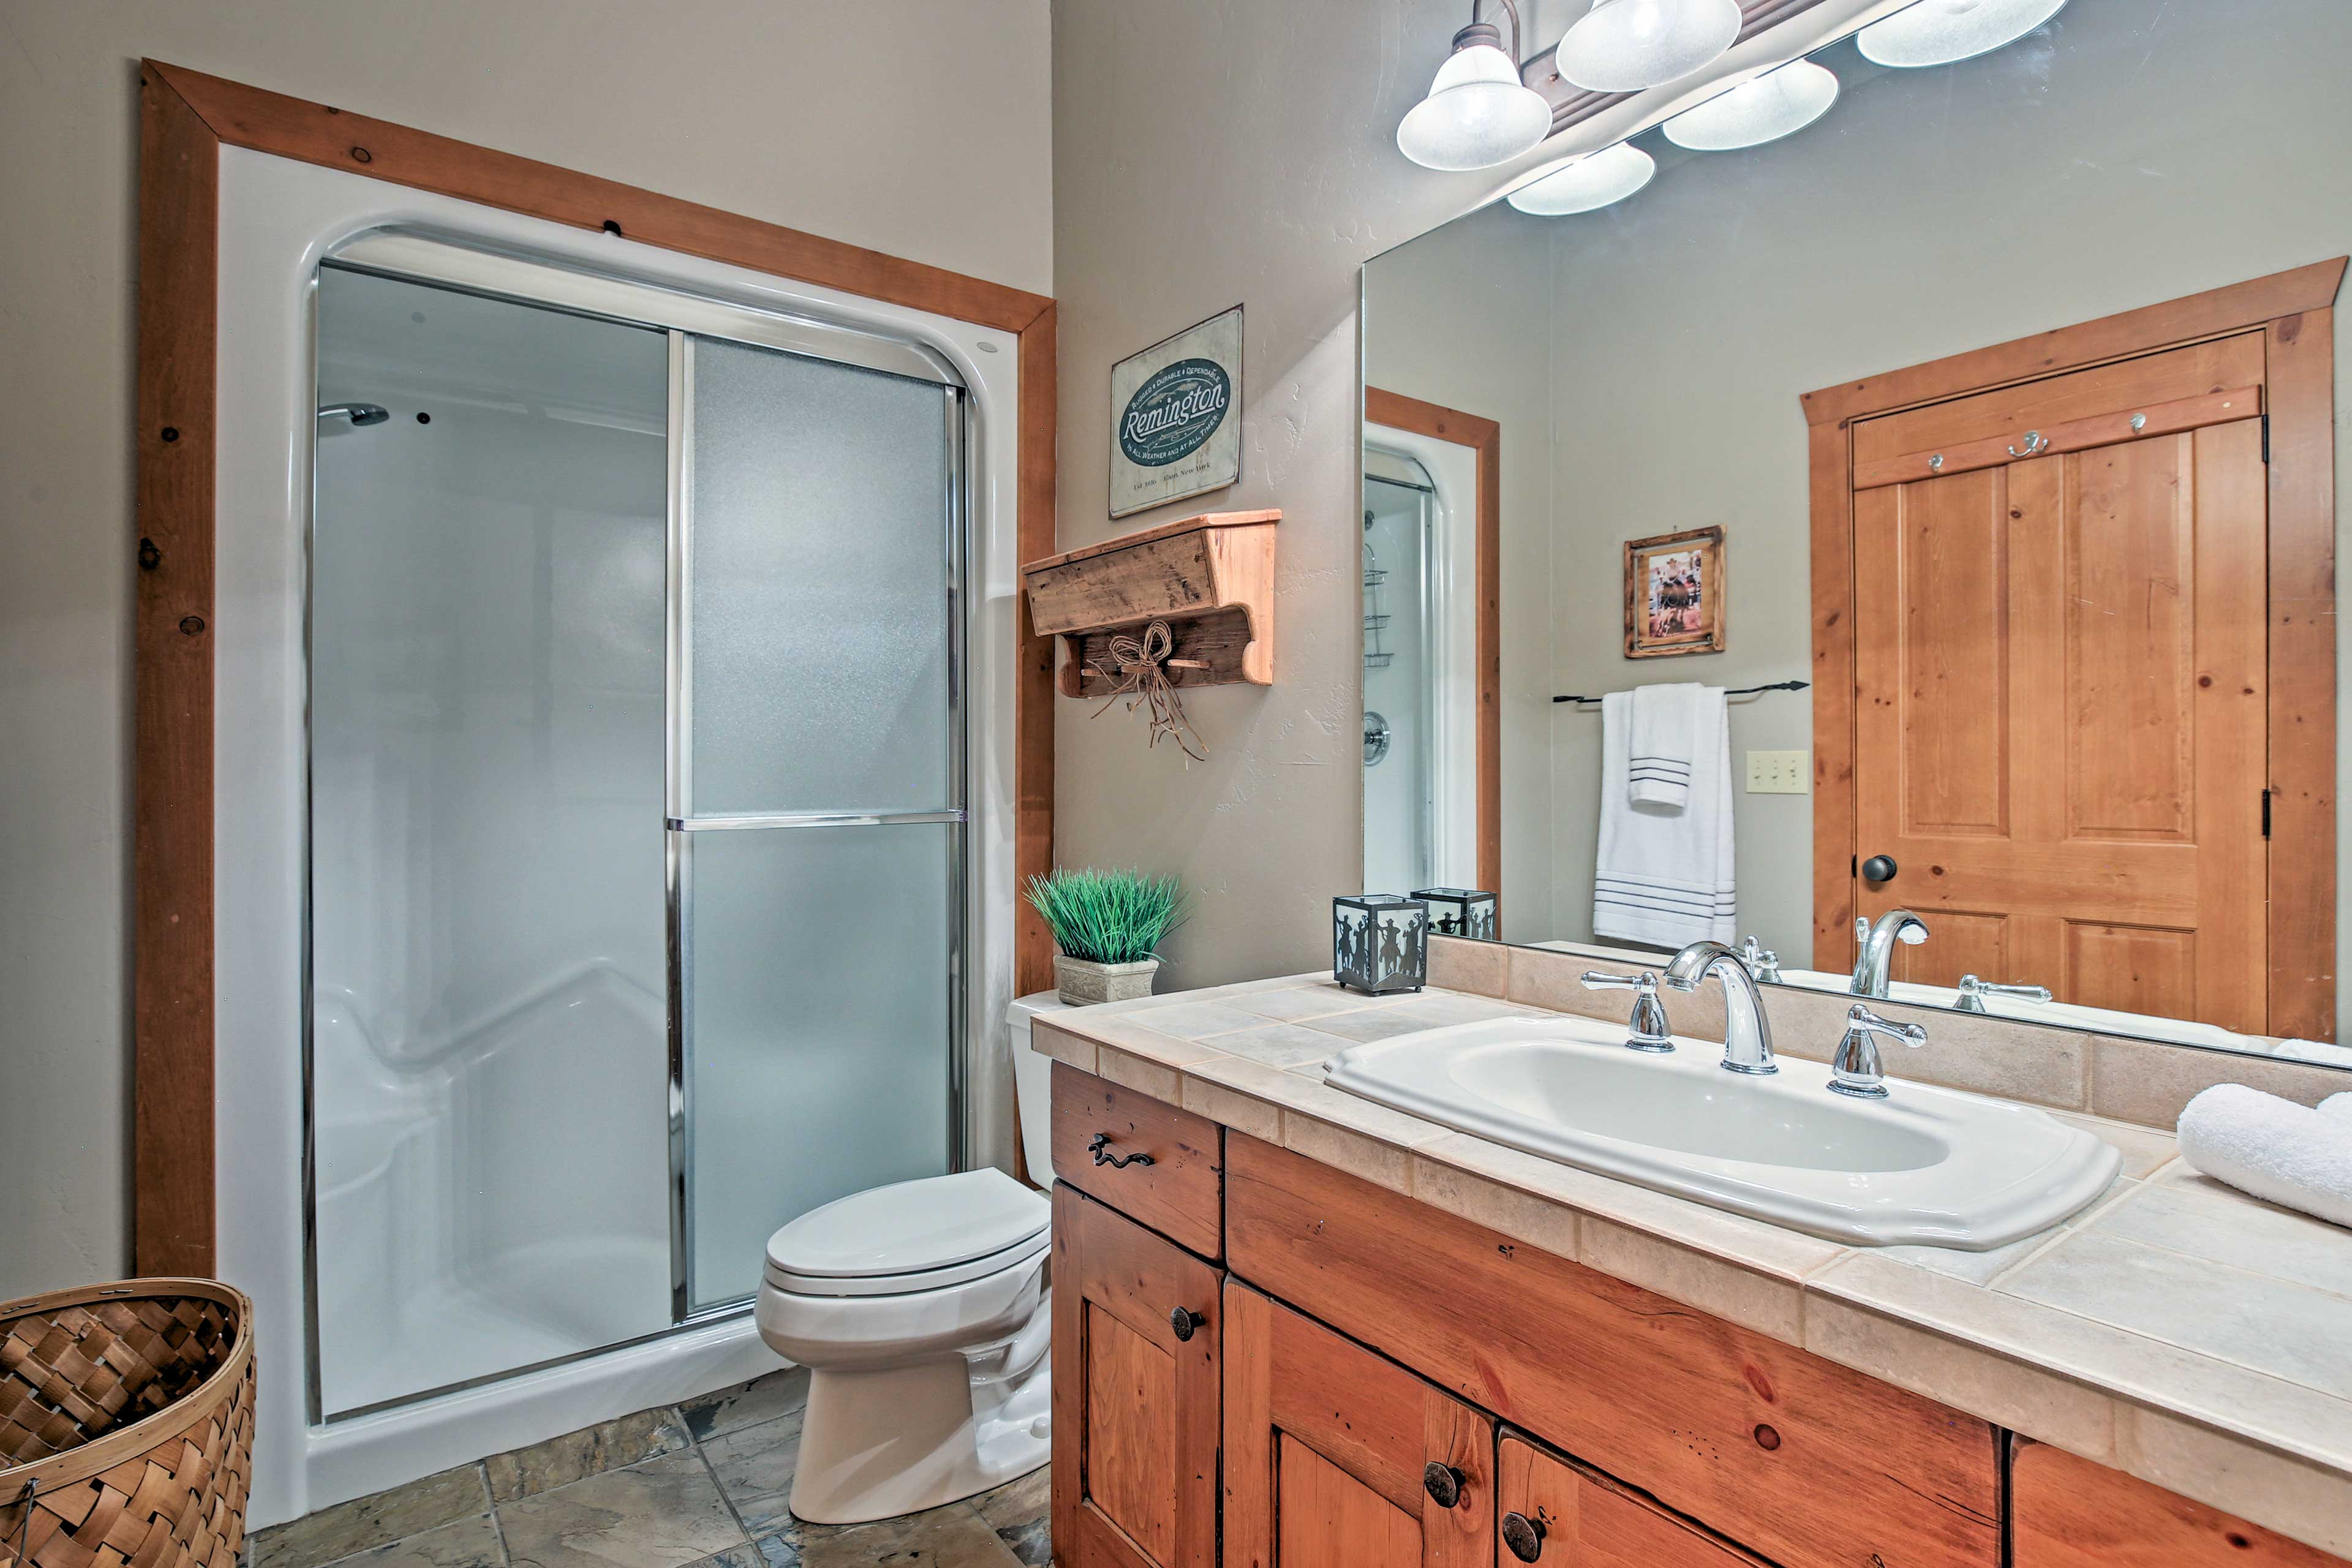 The downstairs bathroom features a luxurious steam shower!